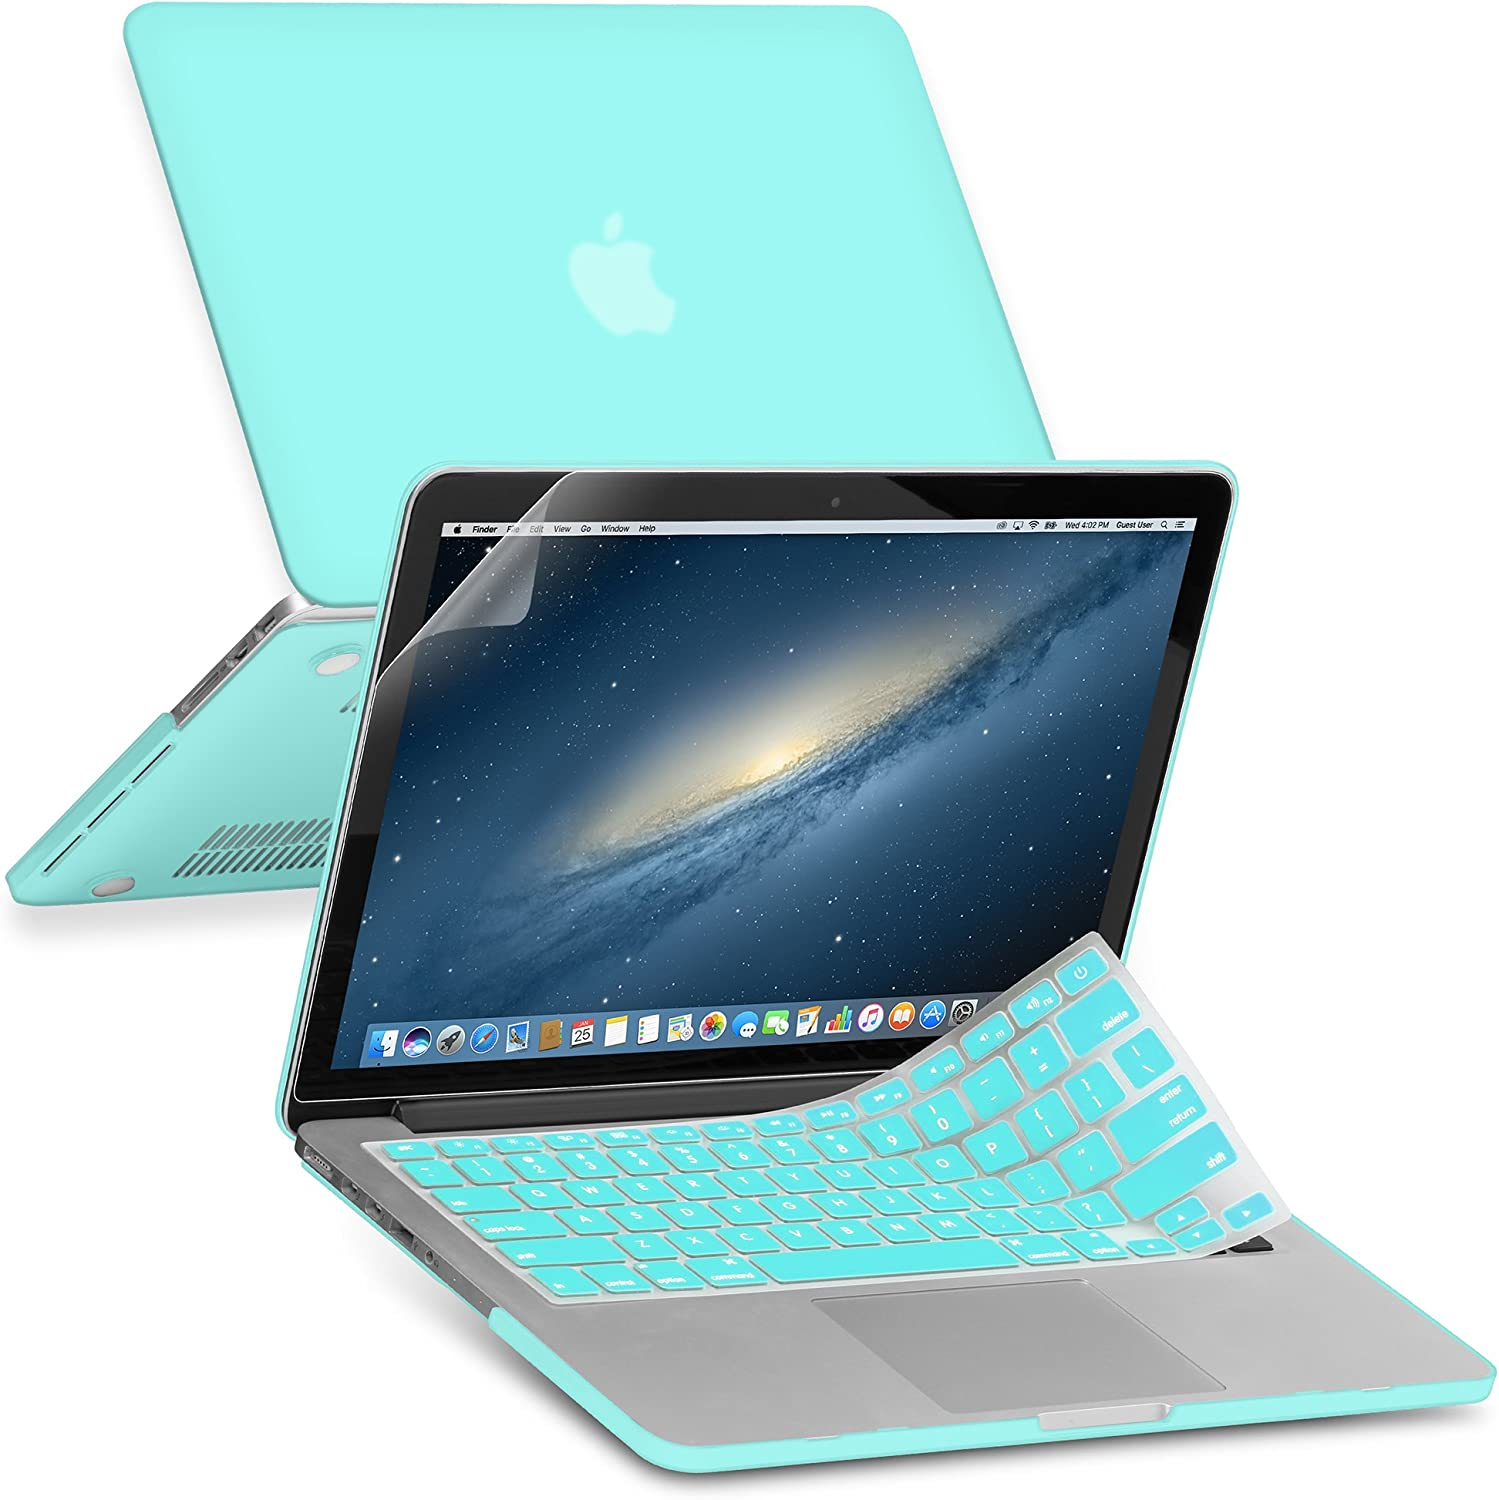 GMYLE Rubber Coated Frosted Hard Shell Case Cover Print for MacBook Pro 13 inch with Retina Display (Model: A1425 & A1502) - (Not fit for MacBook Pro 13) (Robin Egg Blue)